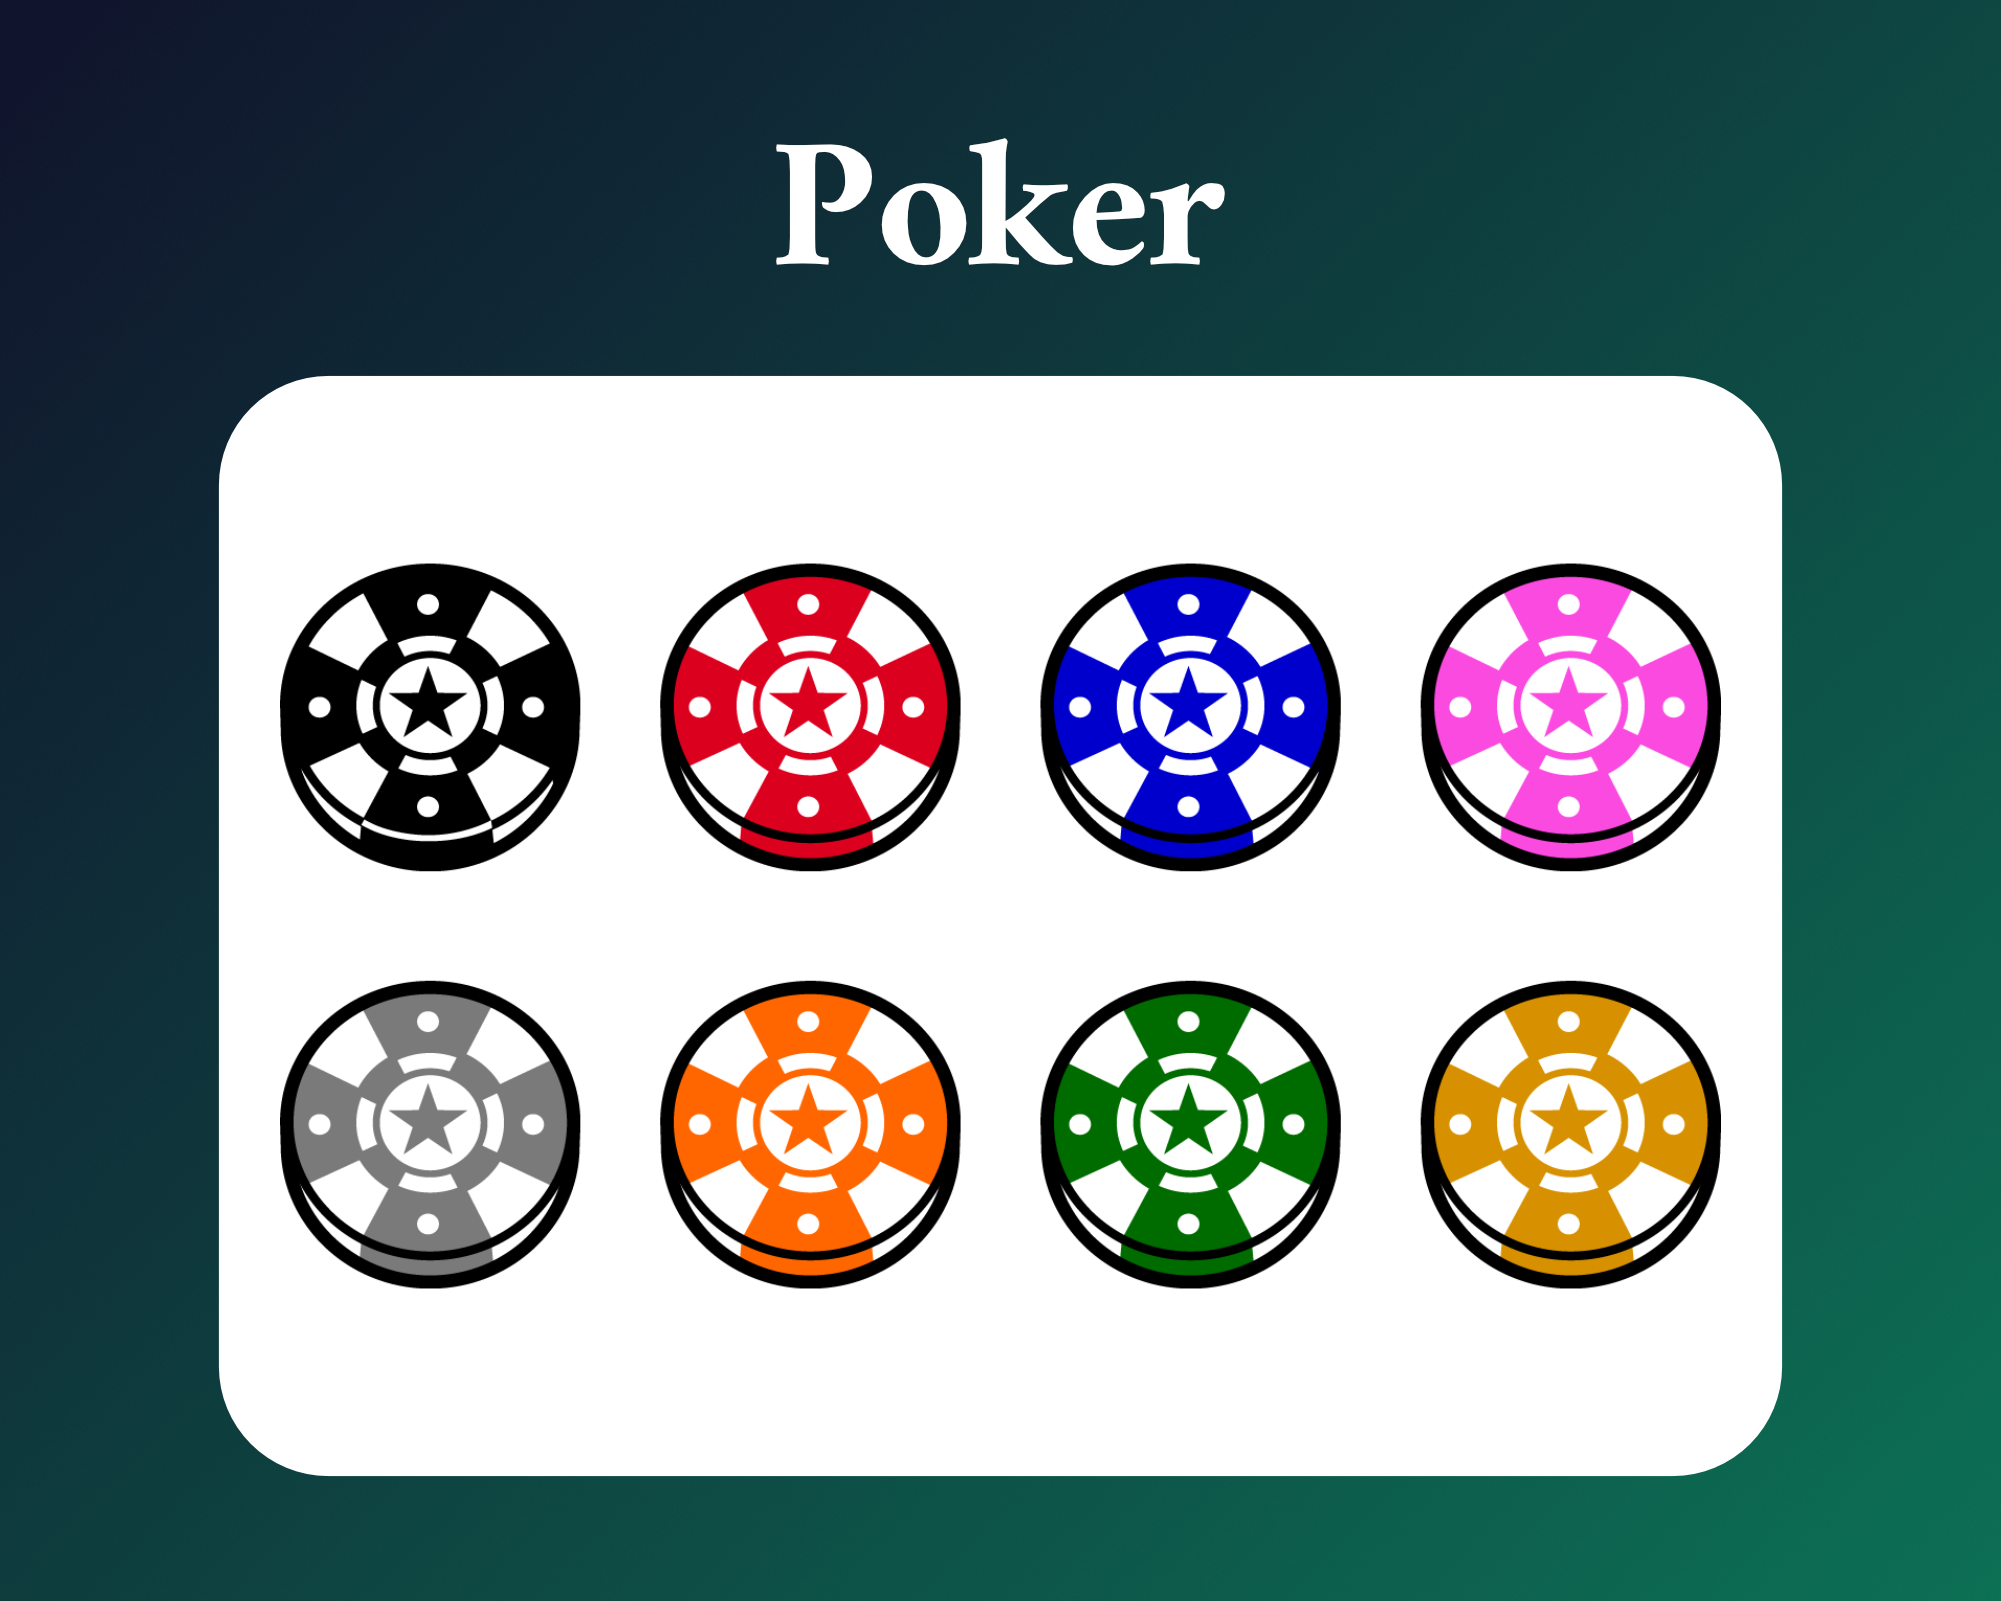 Poker sub badges for twitch